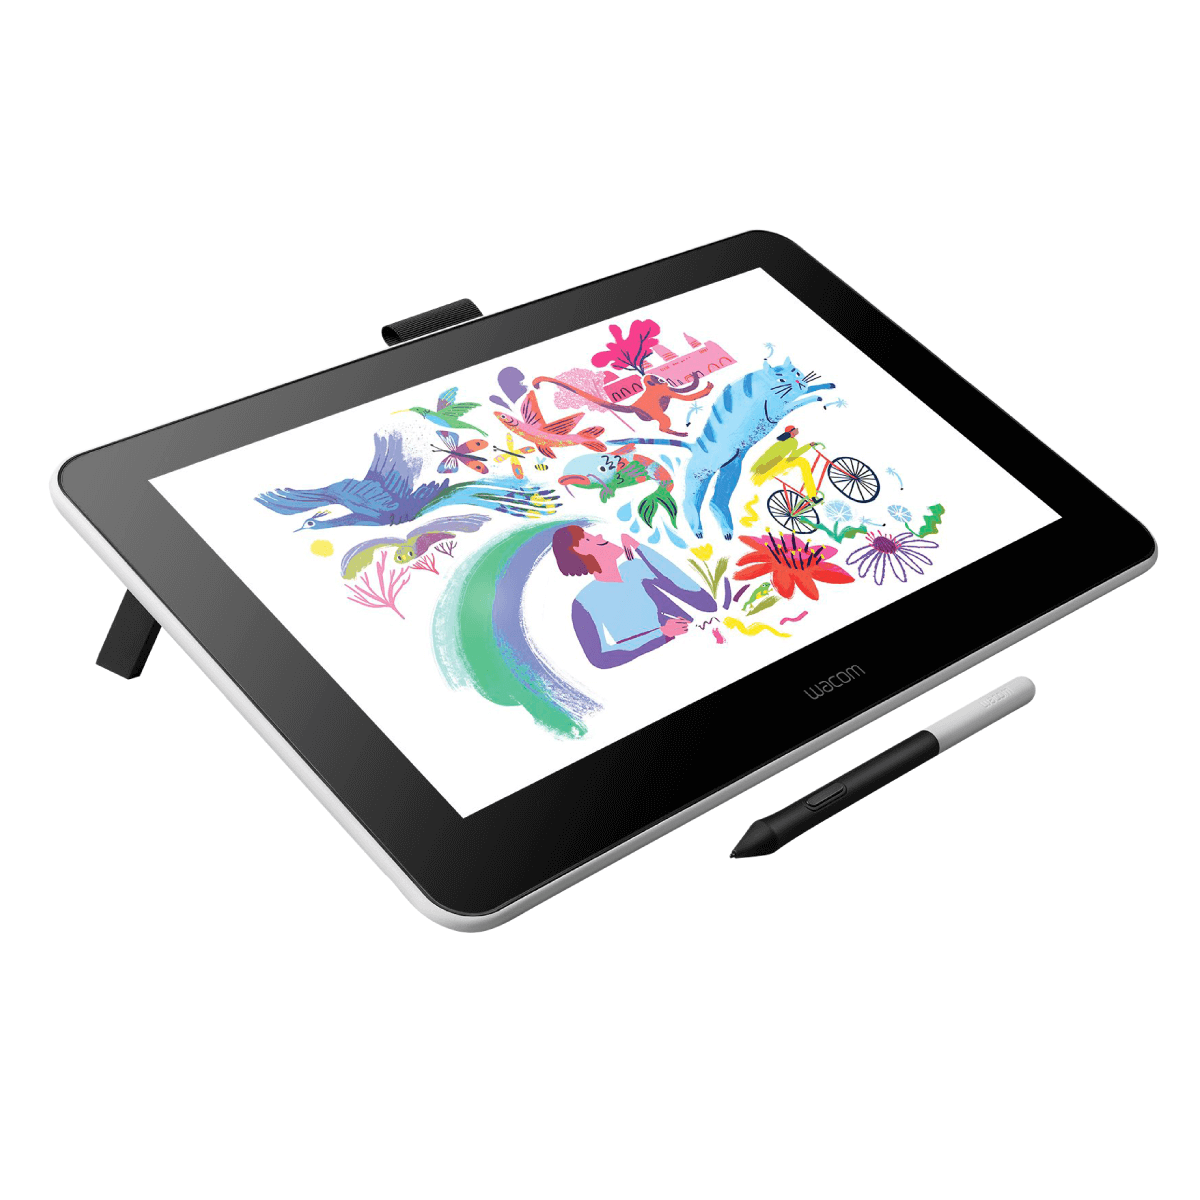 "Wacom One - 13.3"" display"